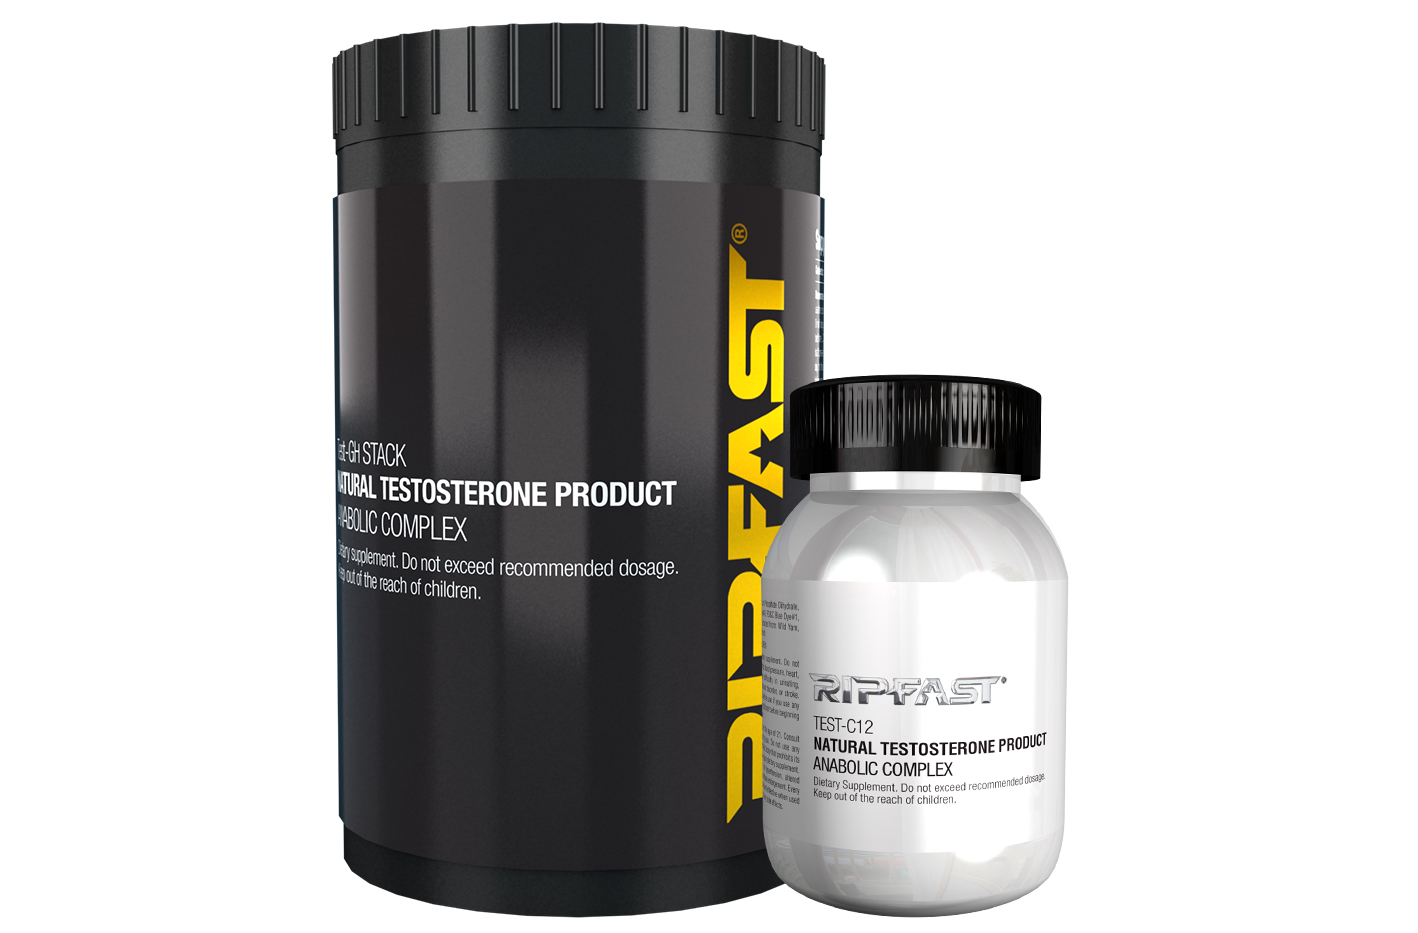 Natural Testosterone Product